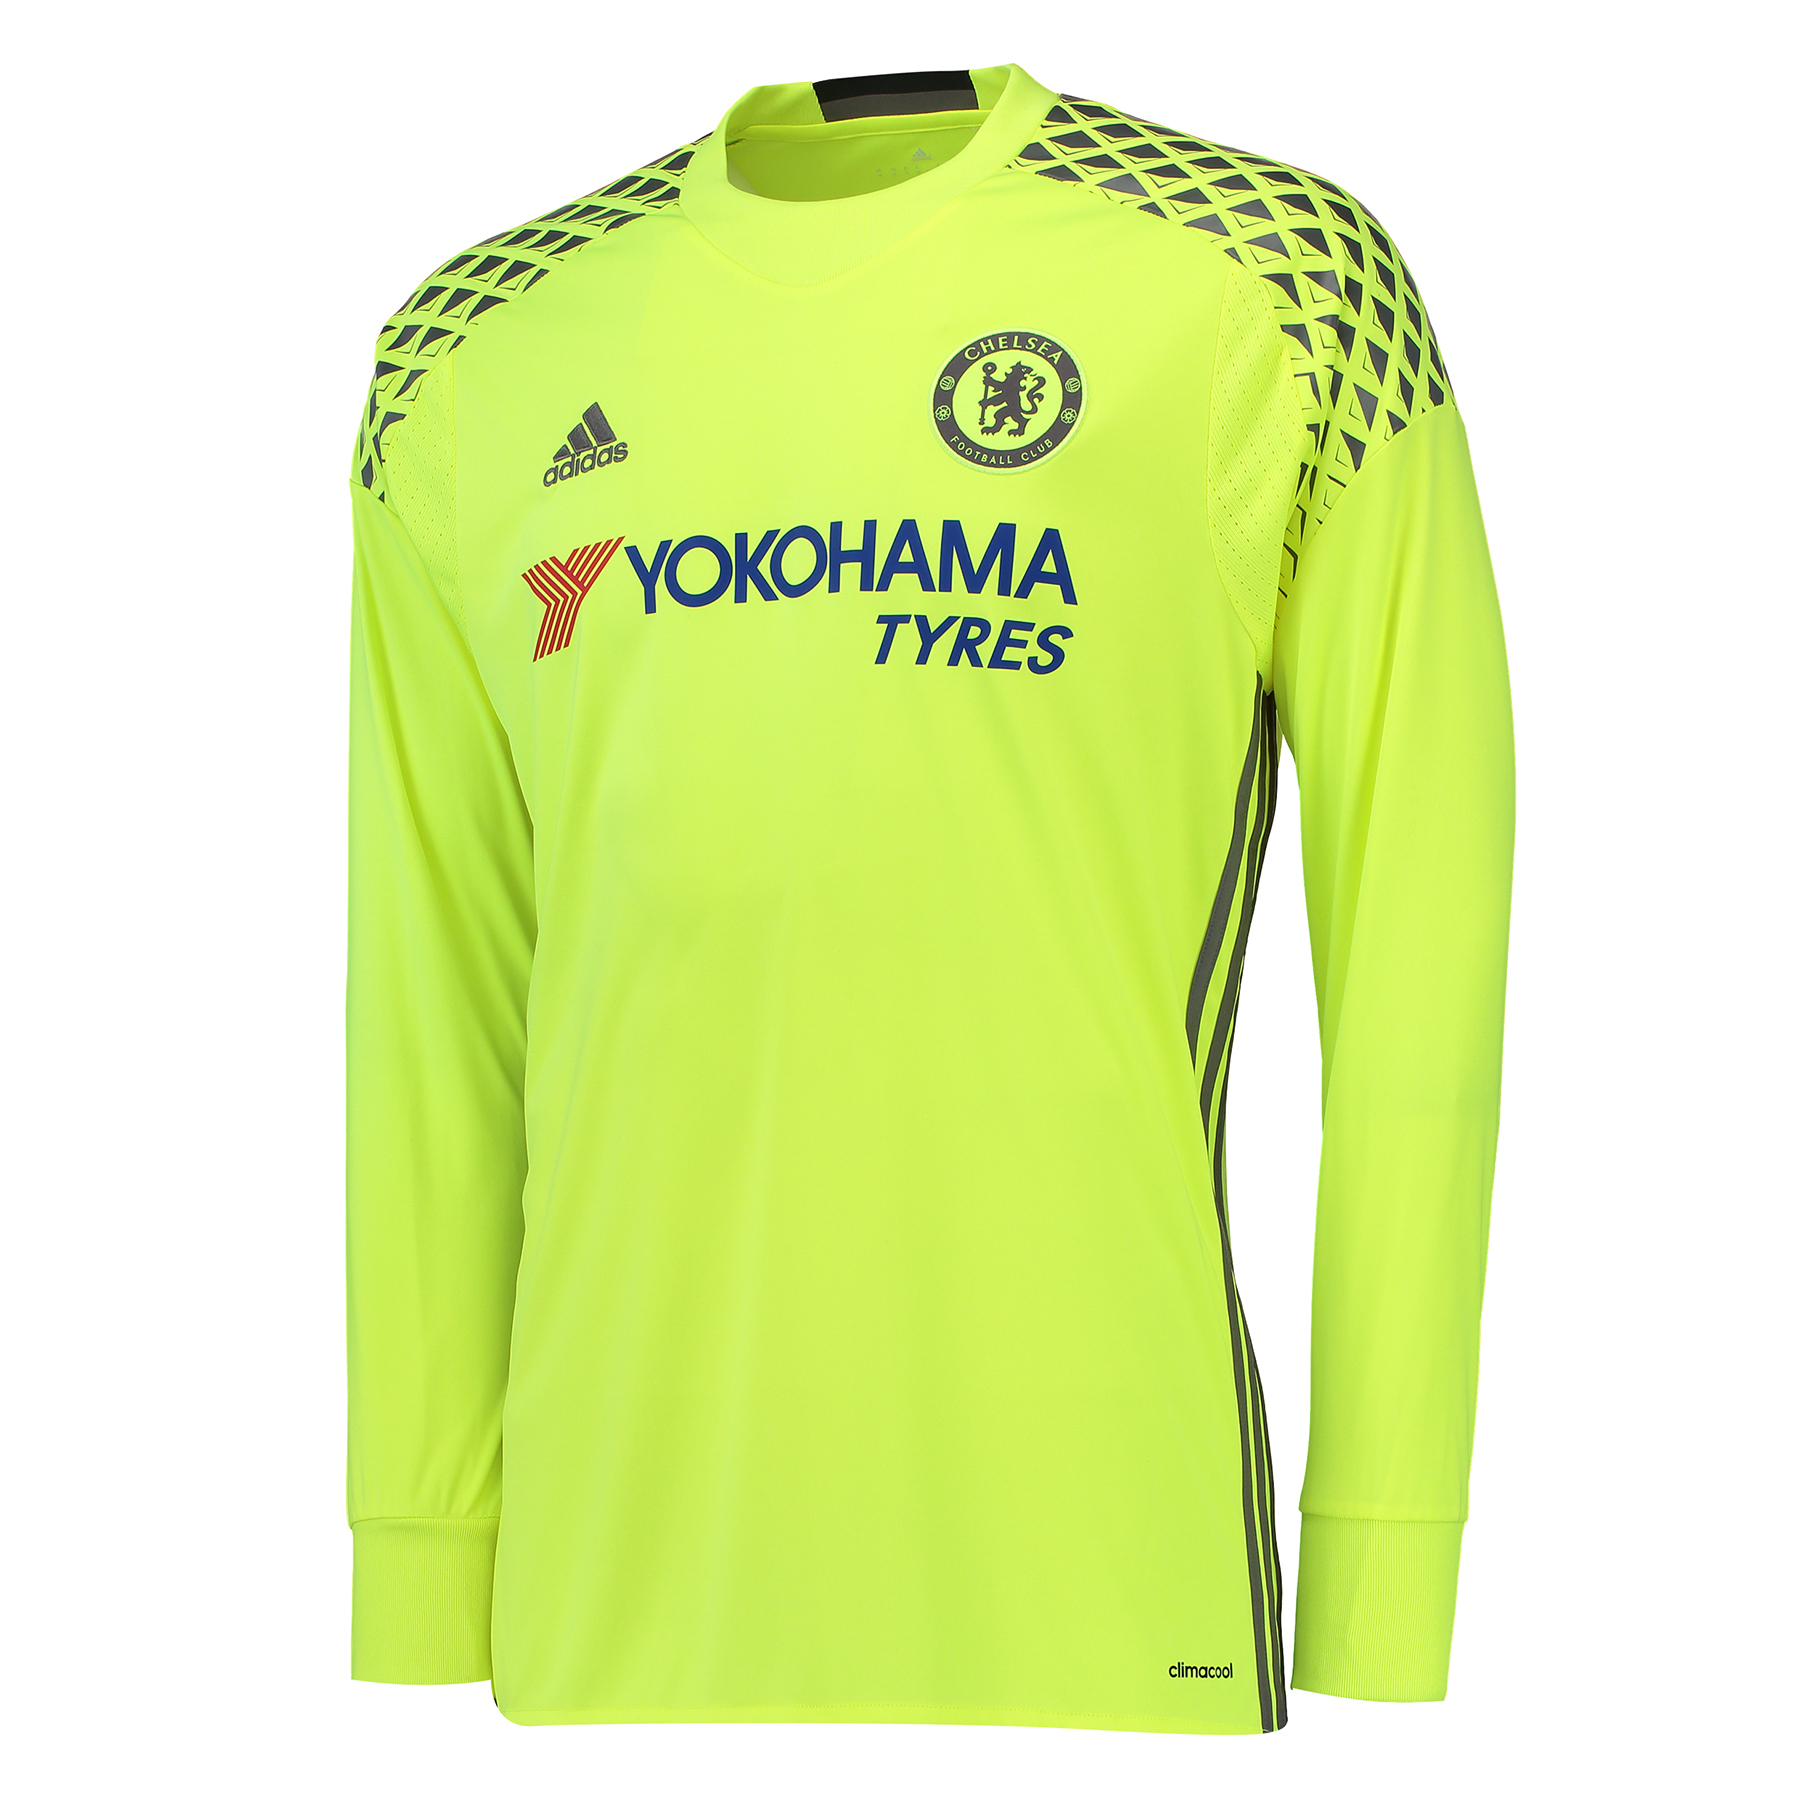 Chelsea Goalkeeper Shirt 16-17   Like any great goalkeeper of the modern era, the new Chelsea Goalkeeper Shirt 16-17 is equally bold and bright, characterised by a fresh and daring solar yellow and granite palette.   However intense the goalmouth action might become, advanced Climacool® heat and moisture management will help ensure that the coolest of heads prevail, with the Stamford Bridge club proudly represented on this 2016-17 Chelsea goalkeeper's jersey by engineered collar sign-off and woven crest.   Benefits:   Climacool® heat and moisture management Club crest: woven badge Engineered Chelsea FC sign off on collar 100% recycled polyester